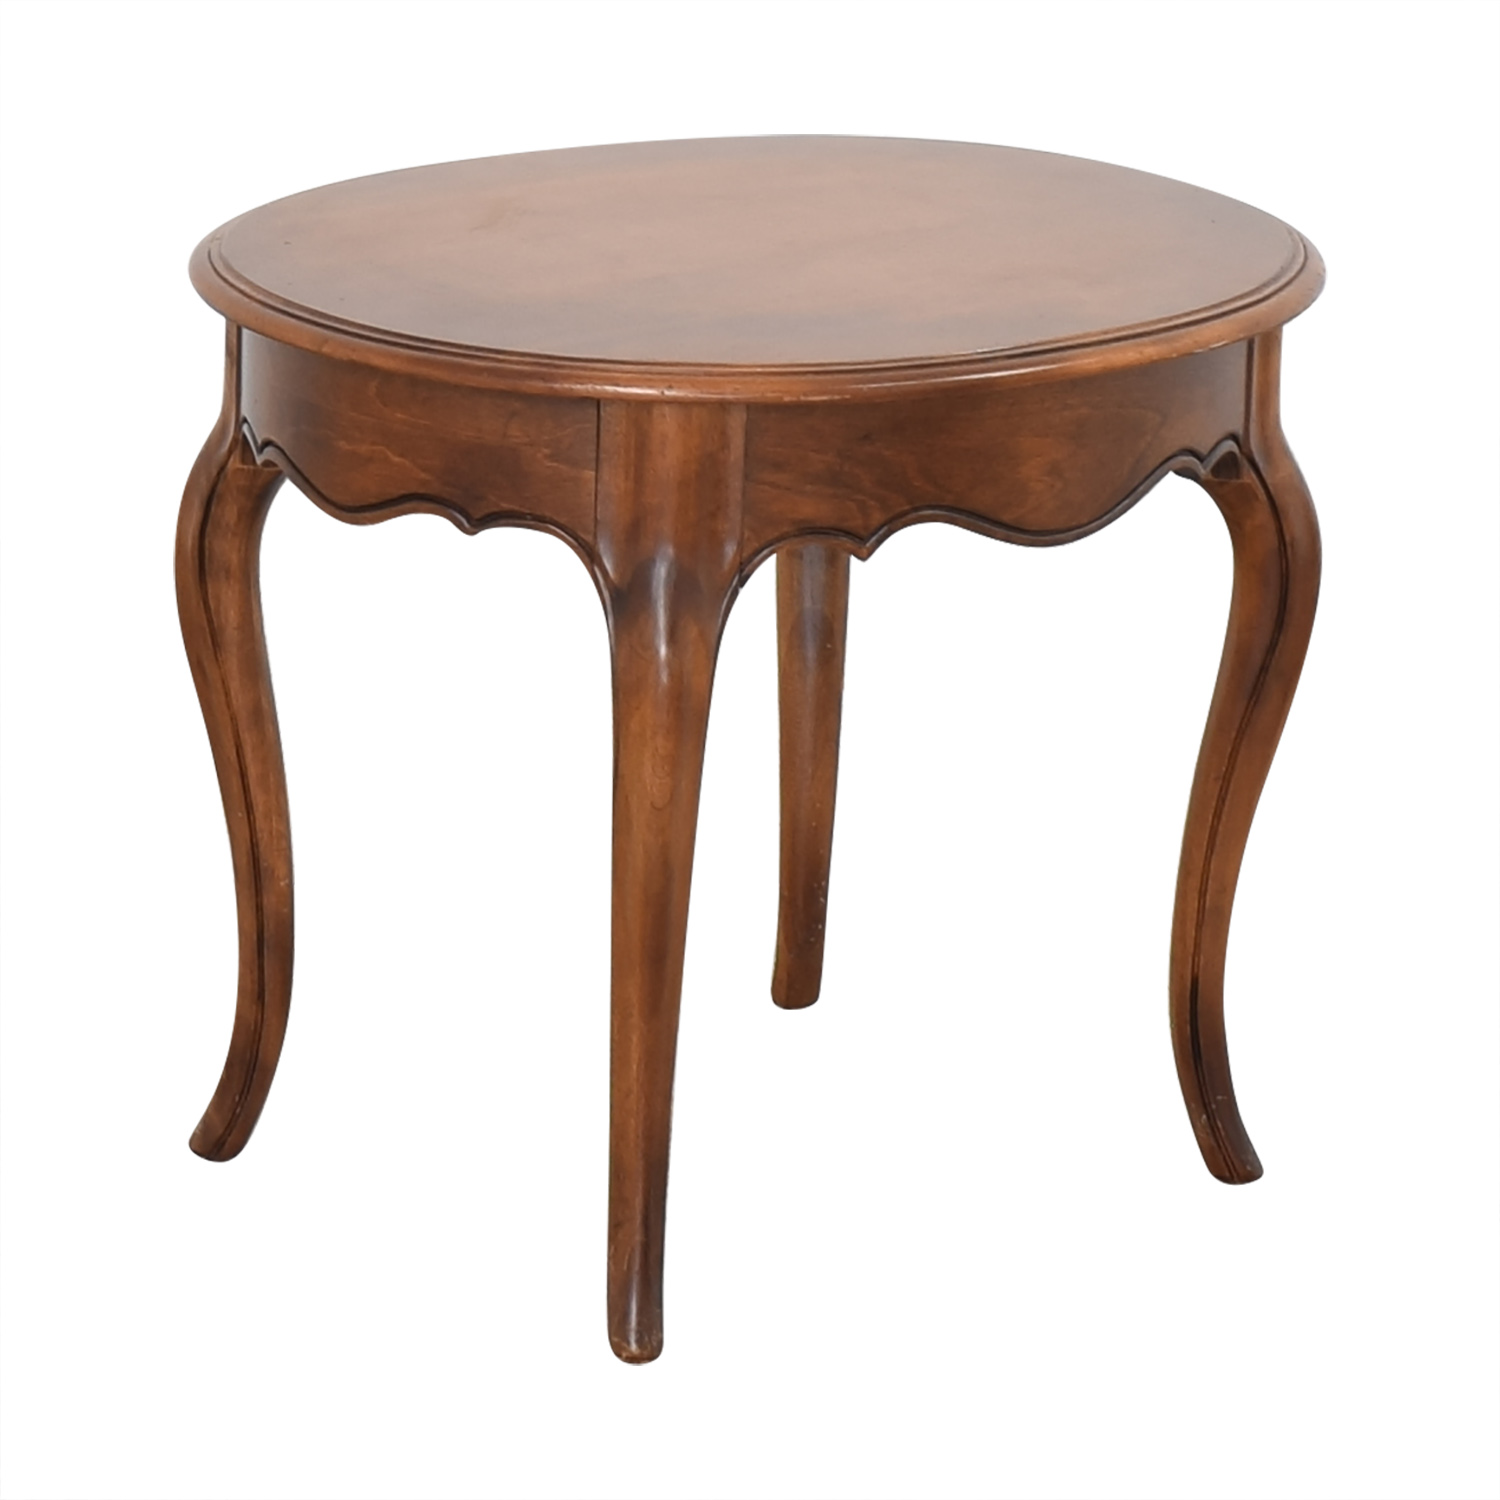 Ethan Allen Ethan Allen Oval End Table used